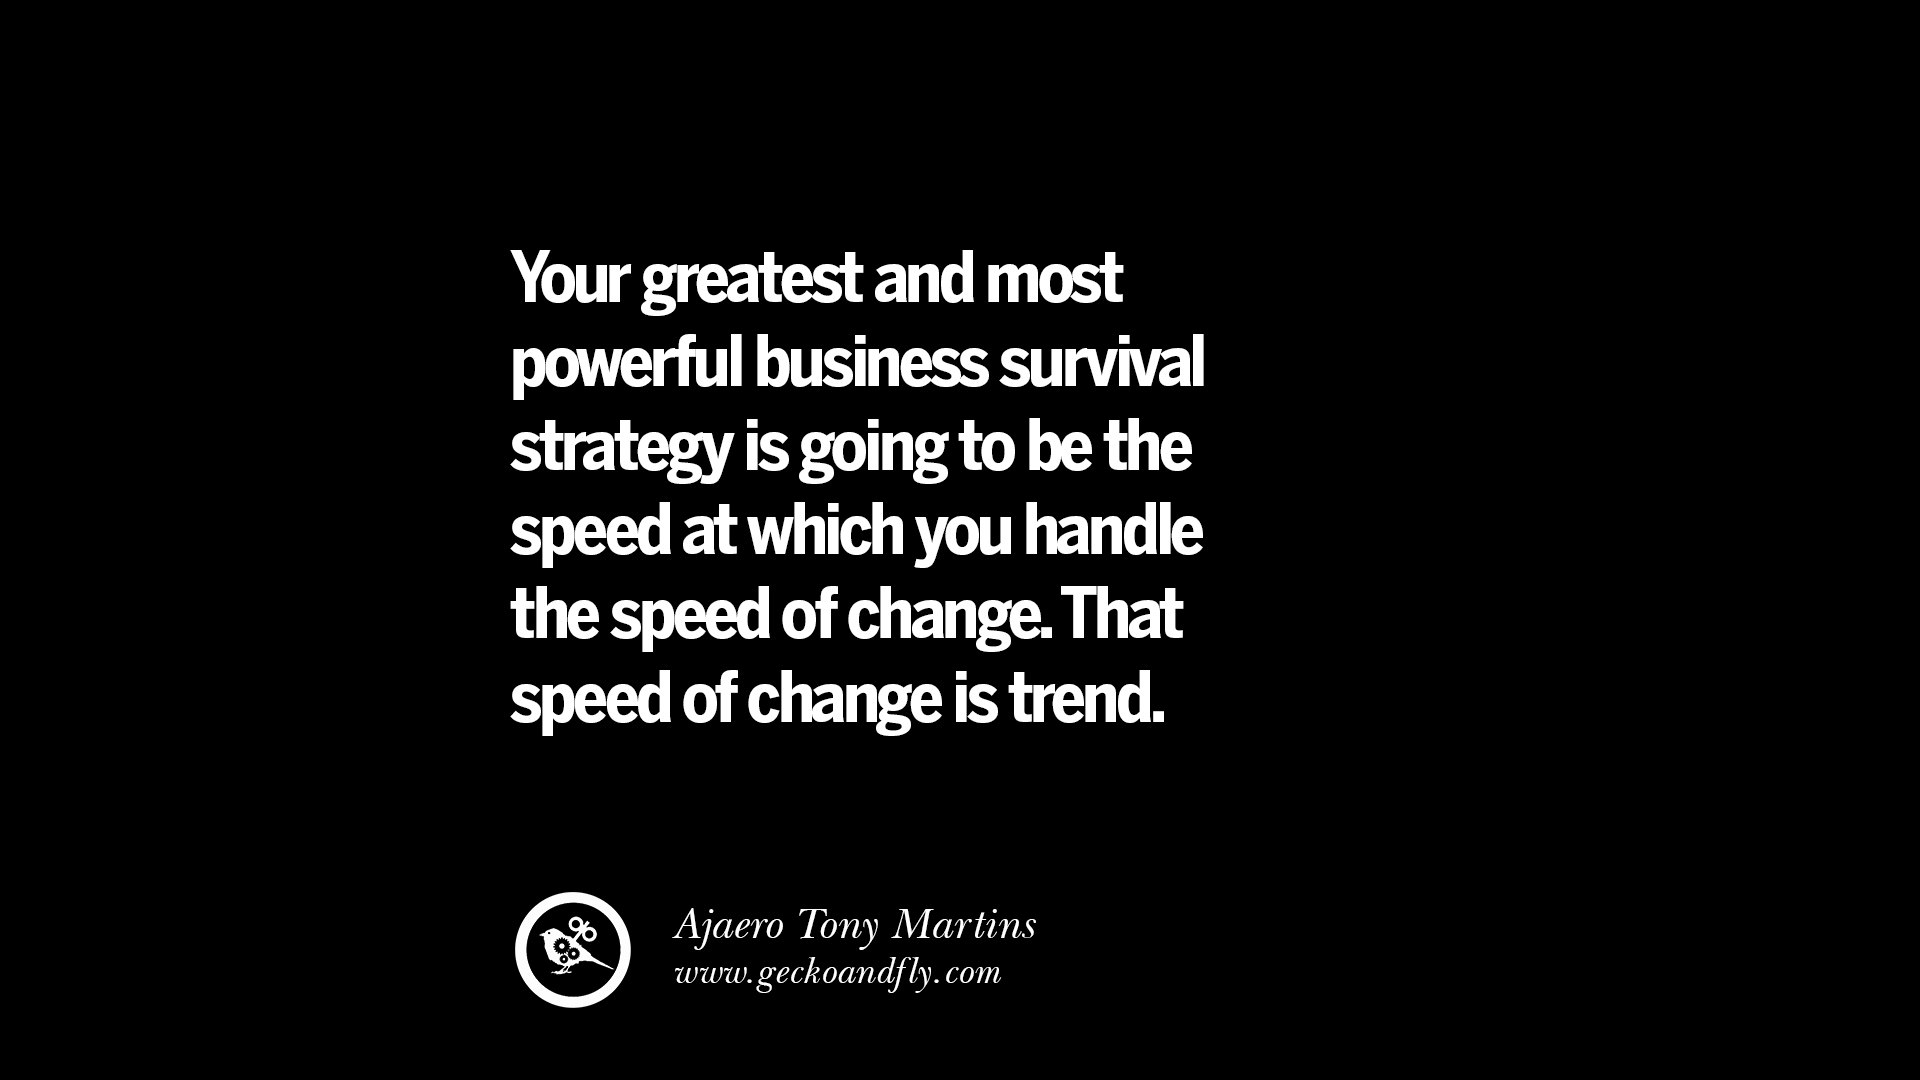 corporate survival strategy breakthrough management Such a strategy requires constant attention to detail,  data management services  the first priority for the small business entrepreneur is survival.